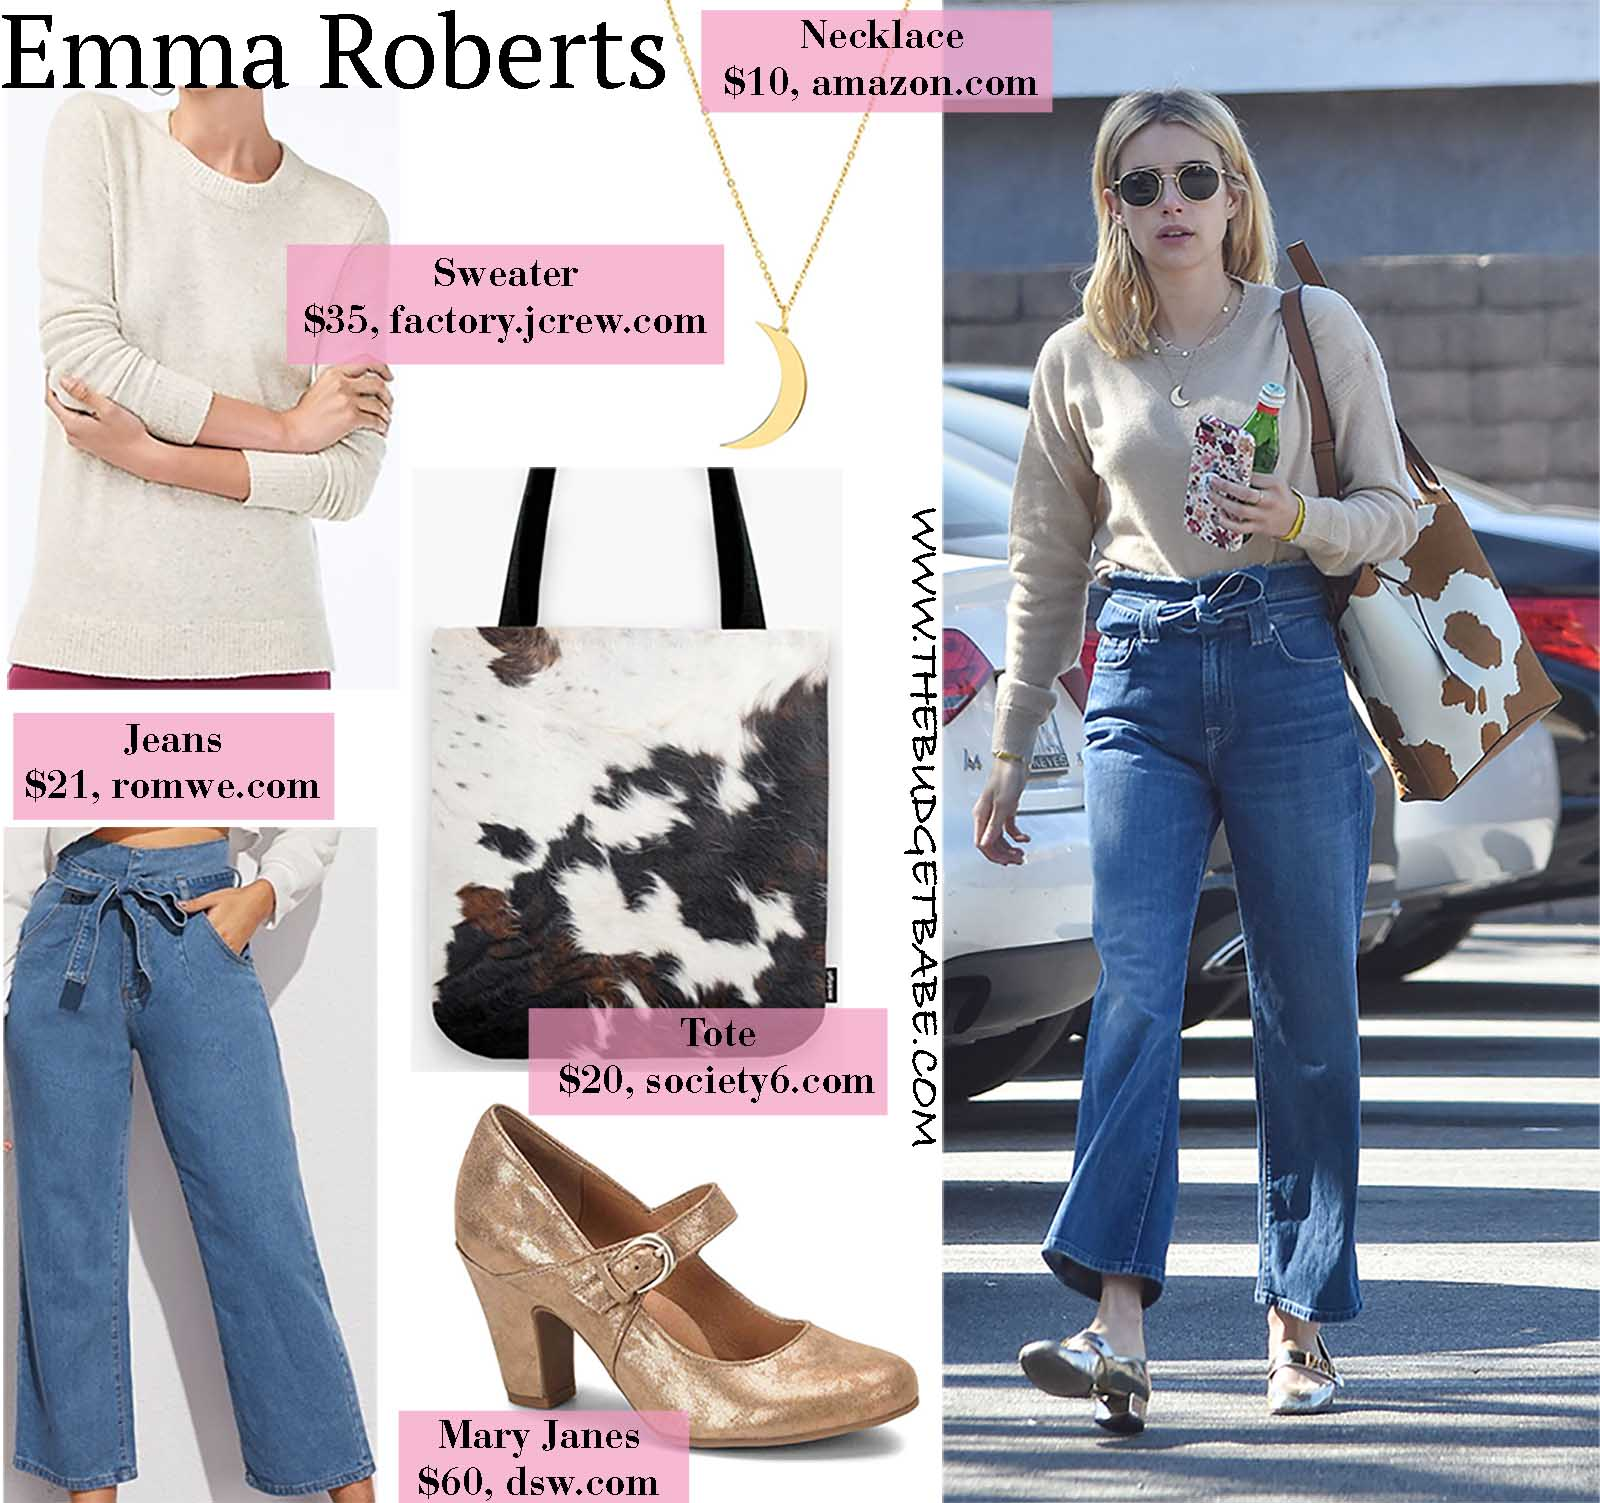 Emma wears the perfect transitional Spring outfit!